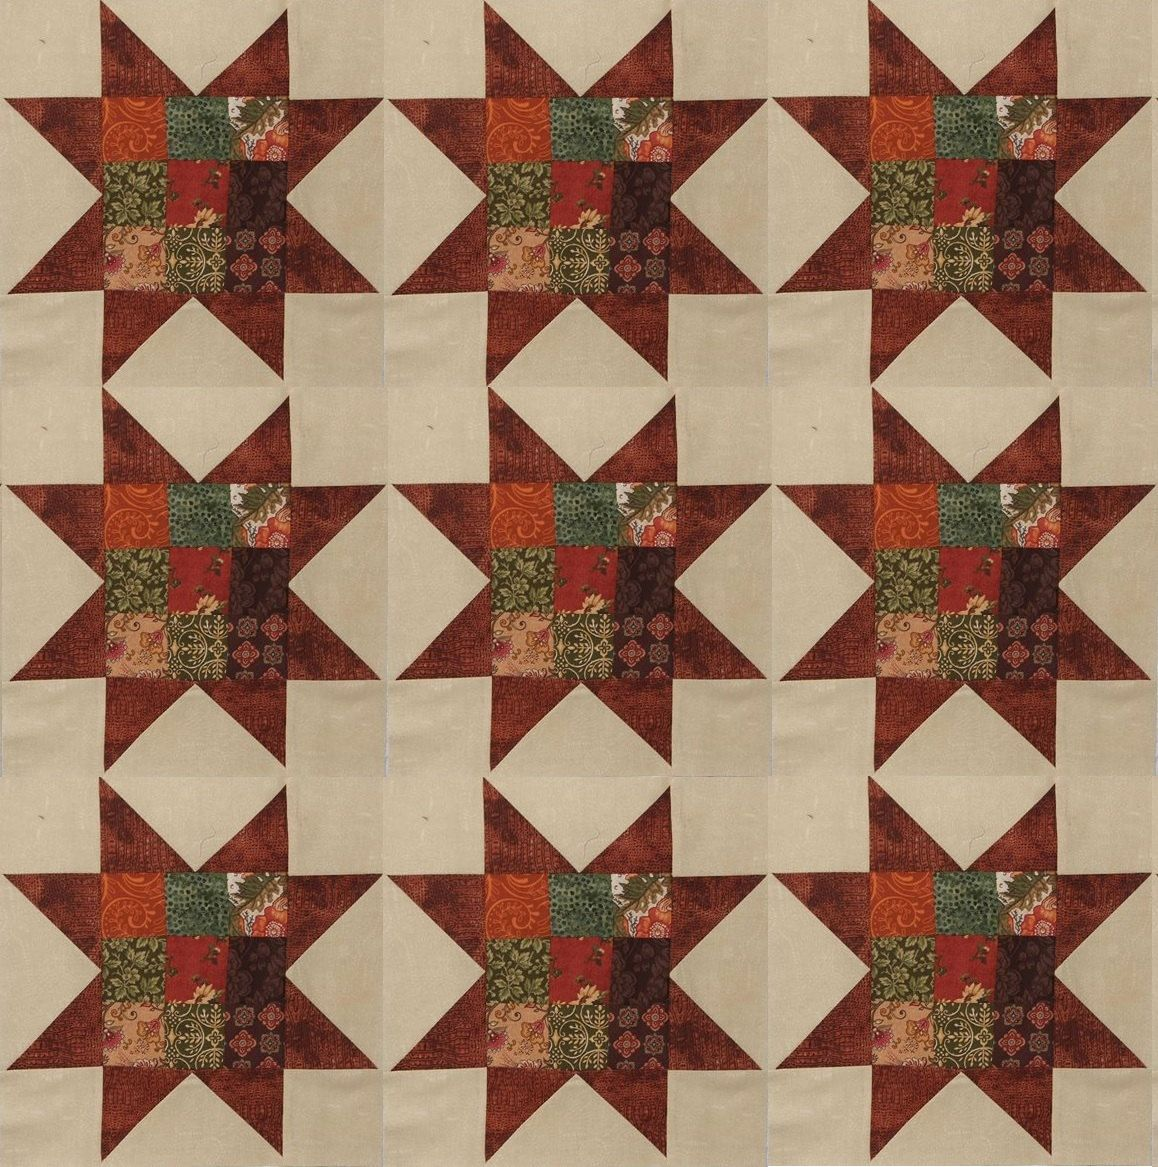 Sawtooth Star Quilt Block Set, 9 Patch, by KountreeCreations on Etsy